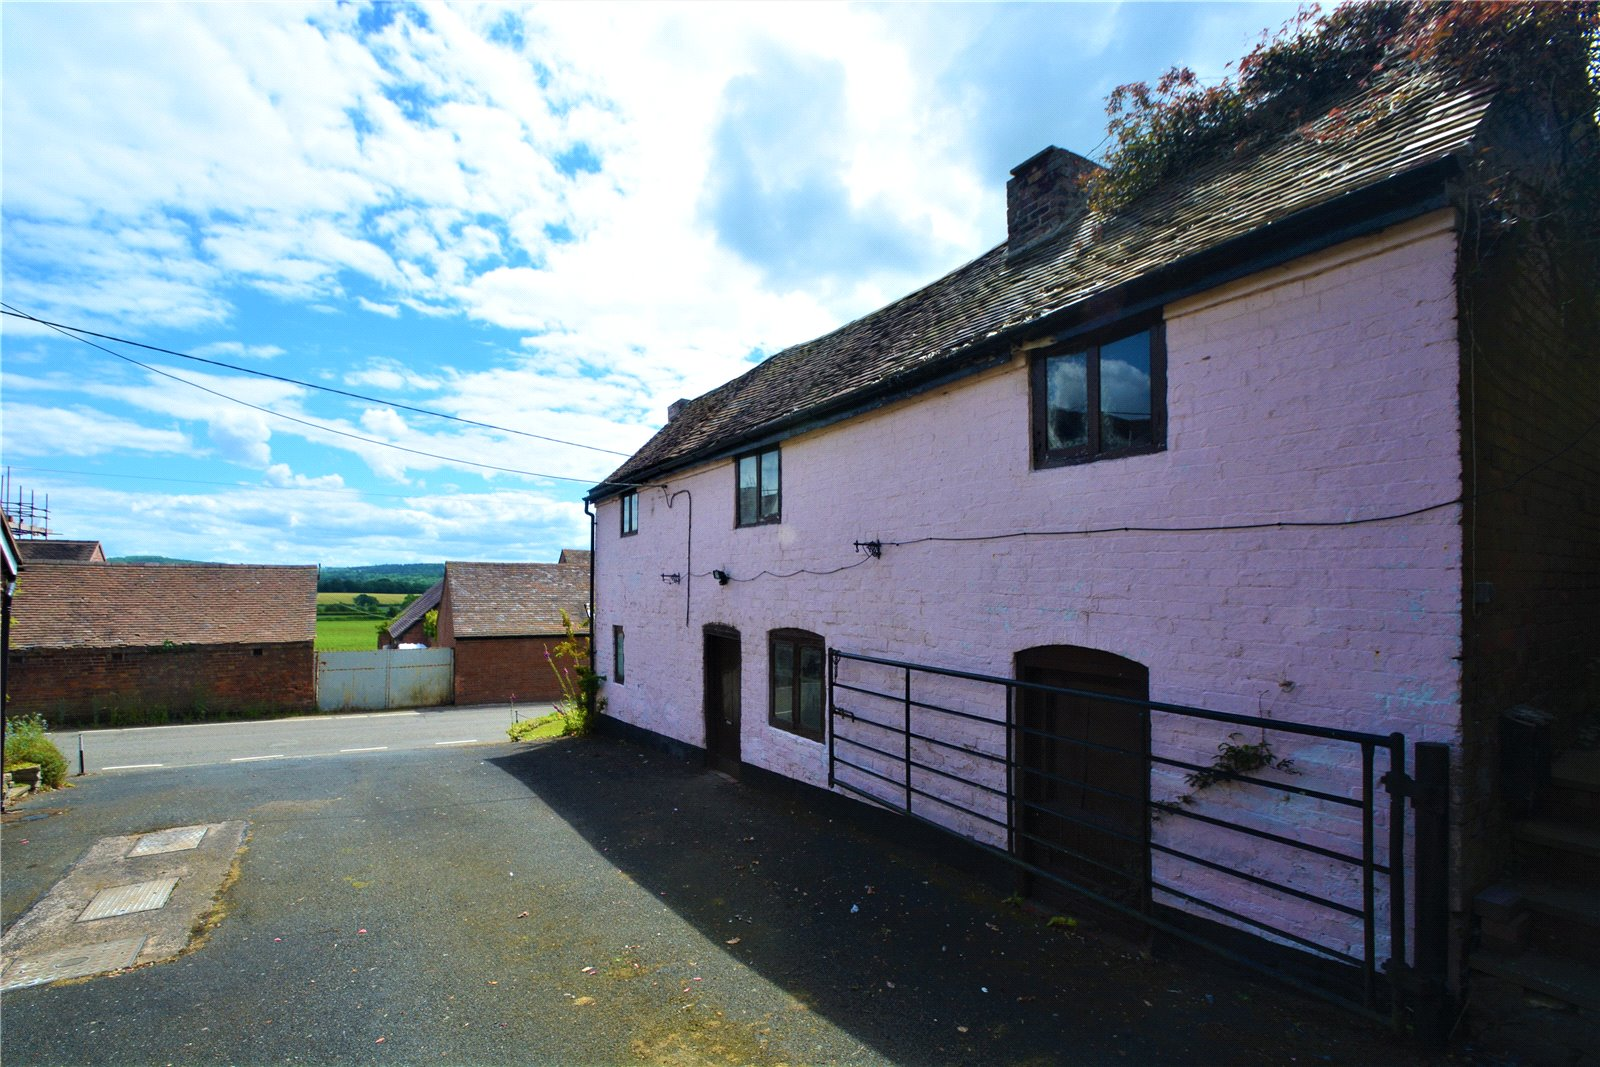 Pear Tree Cottage, Eaton Constantine, Shrewsbury, Shropshire, SY5